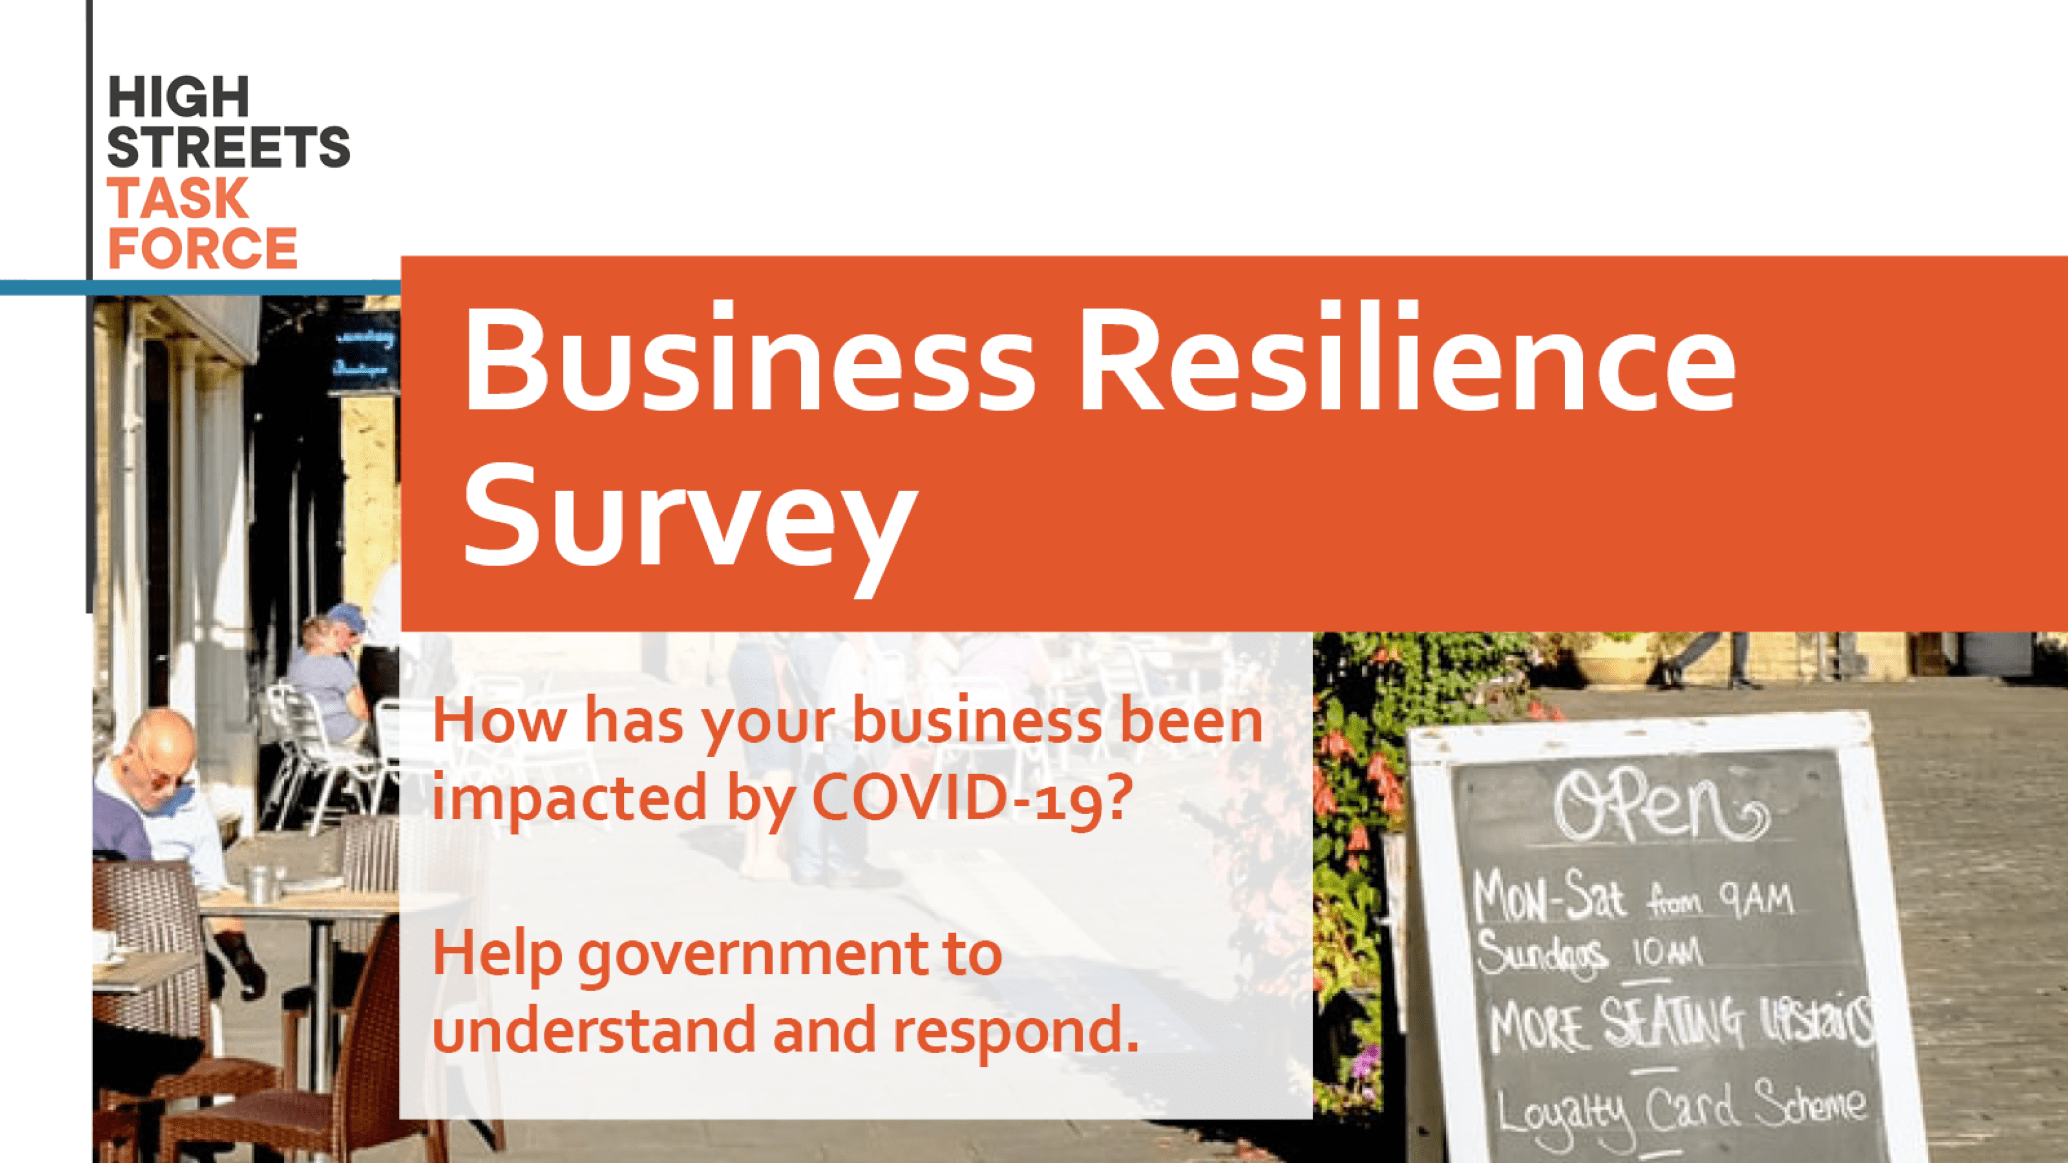 COVID-19 BUSINESS RESILIENCE SURVEY